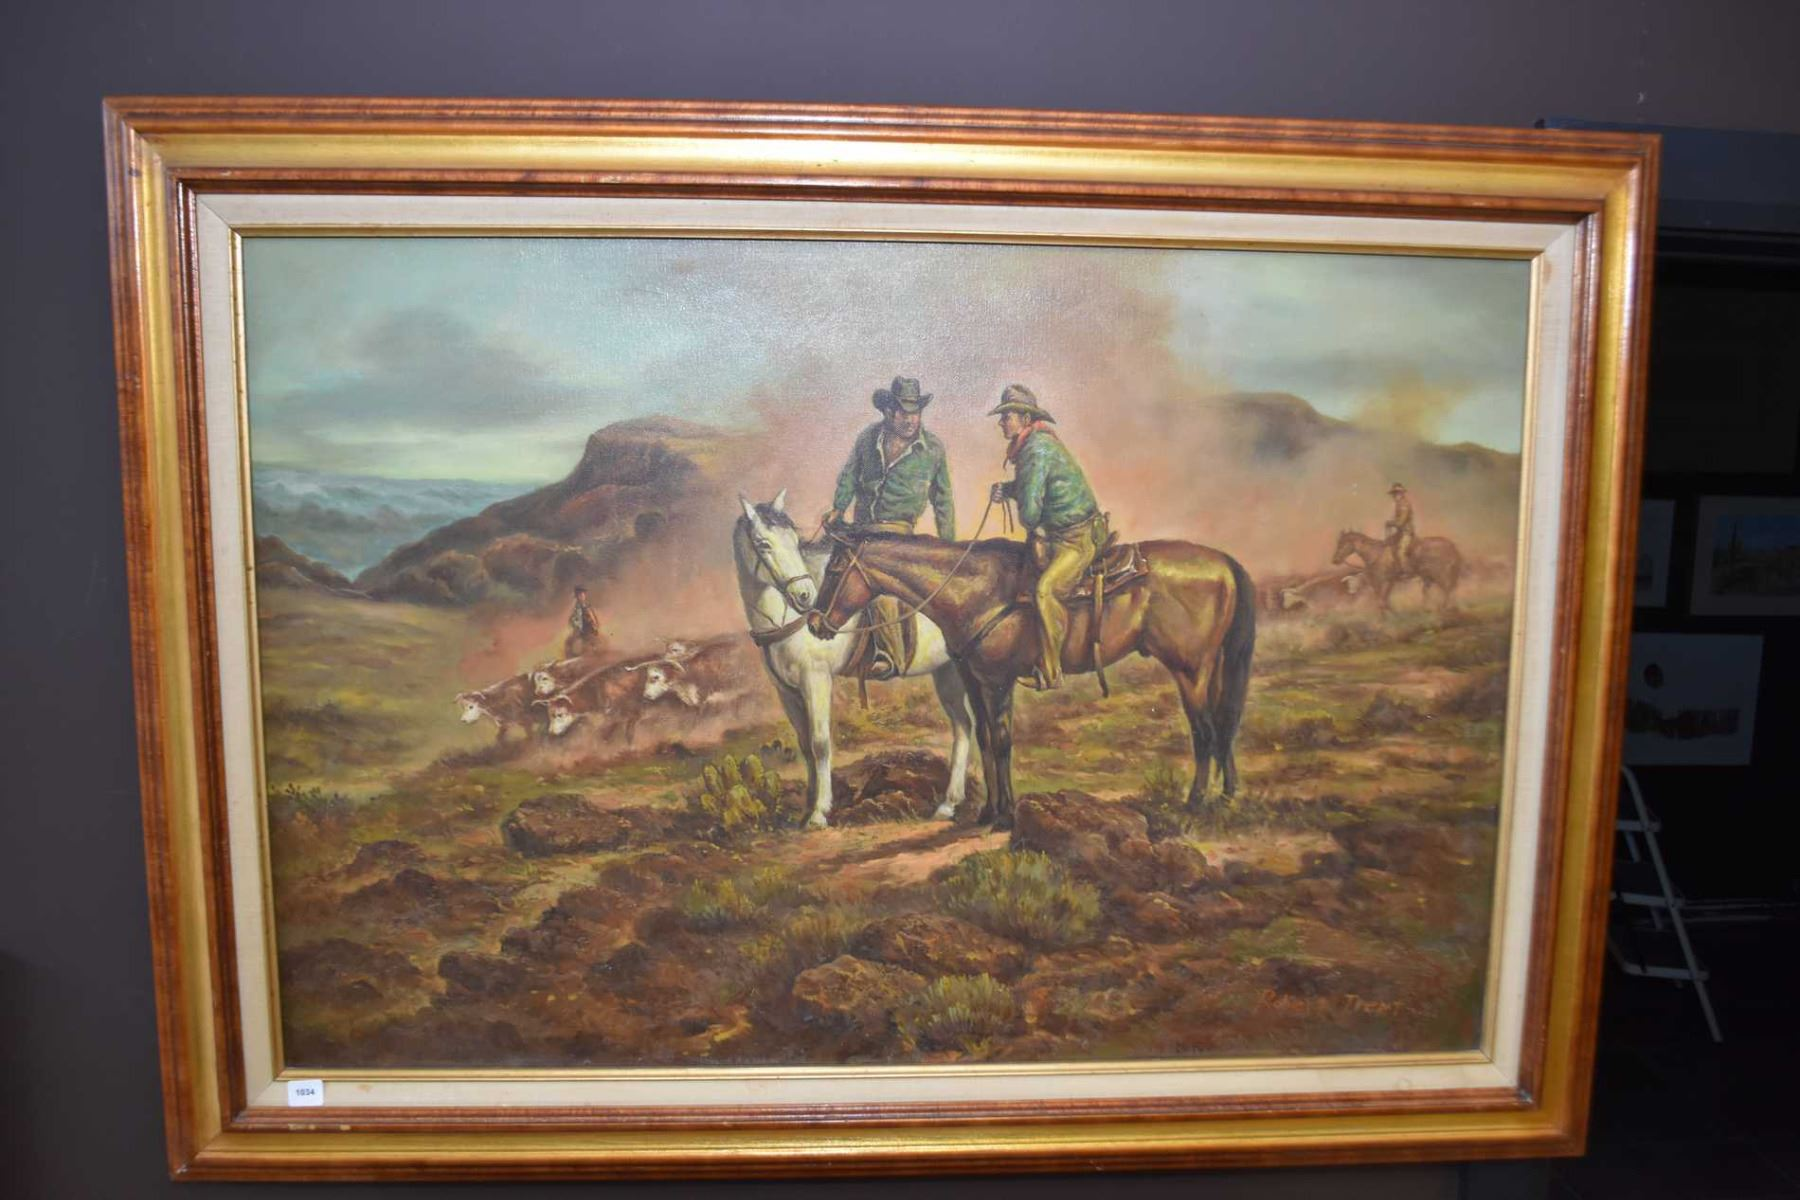 Large Framed Original Oil On Canvas Painting Of Cowboys